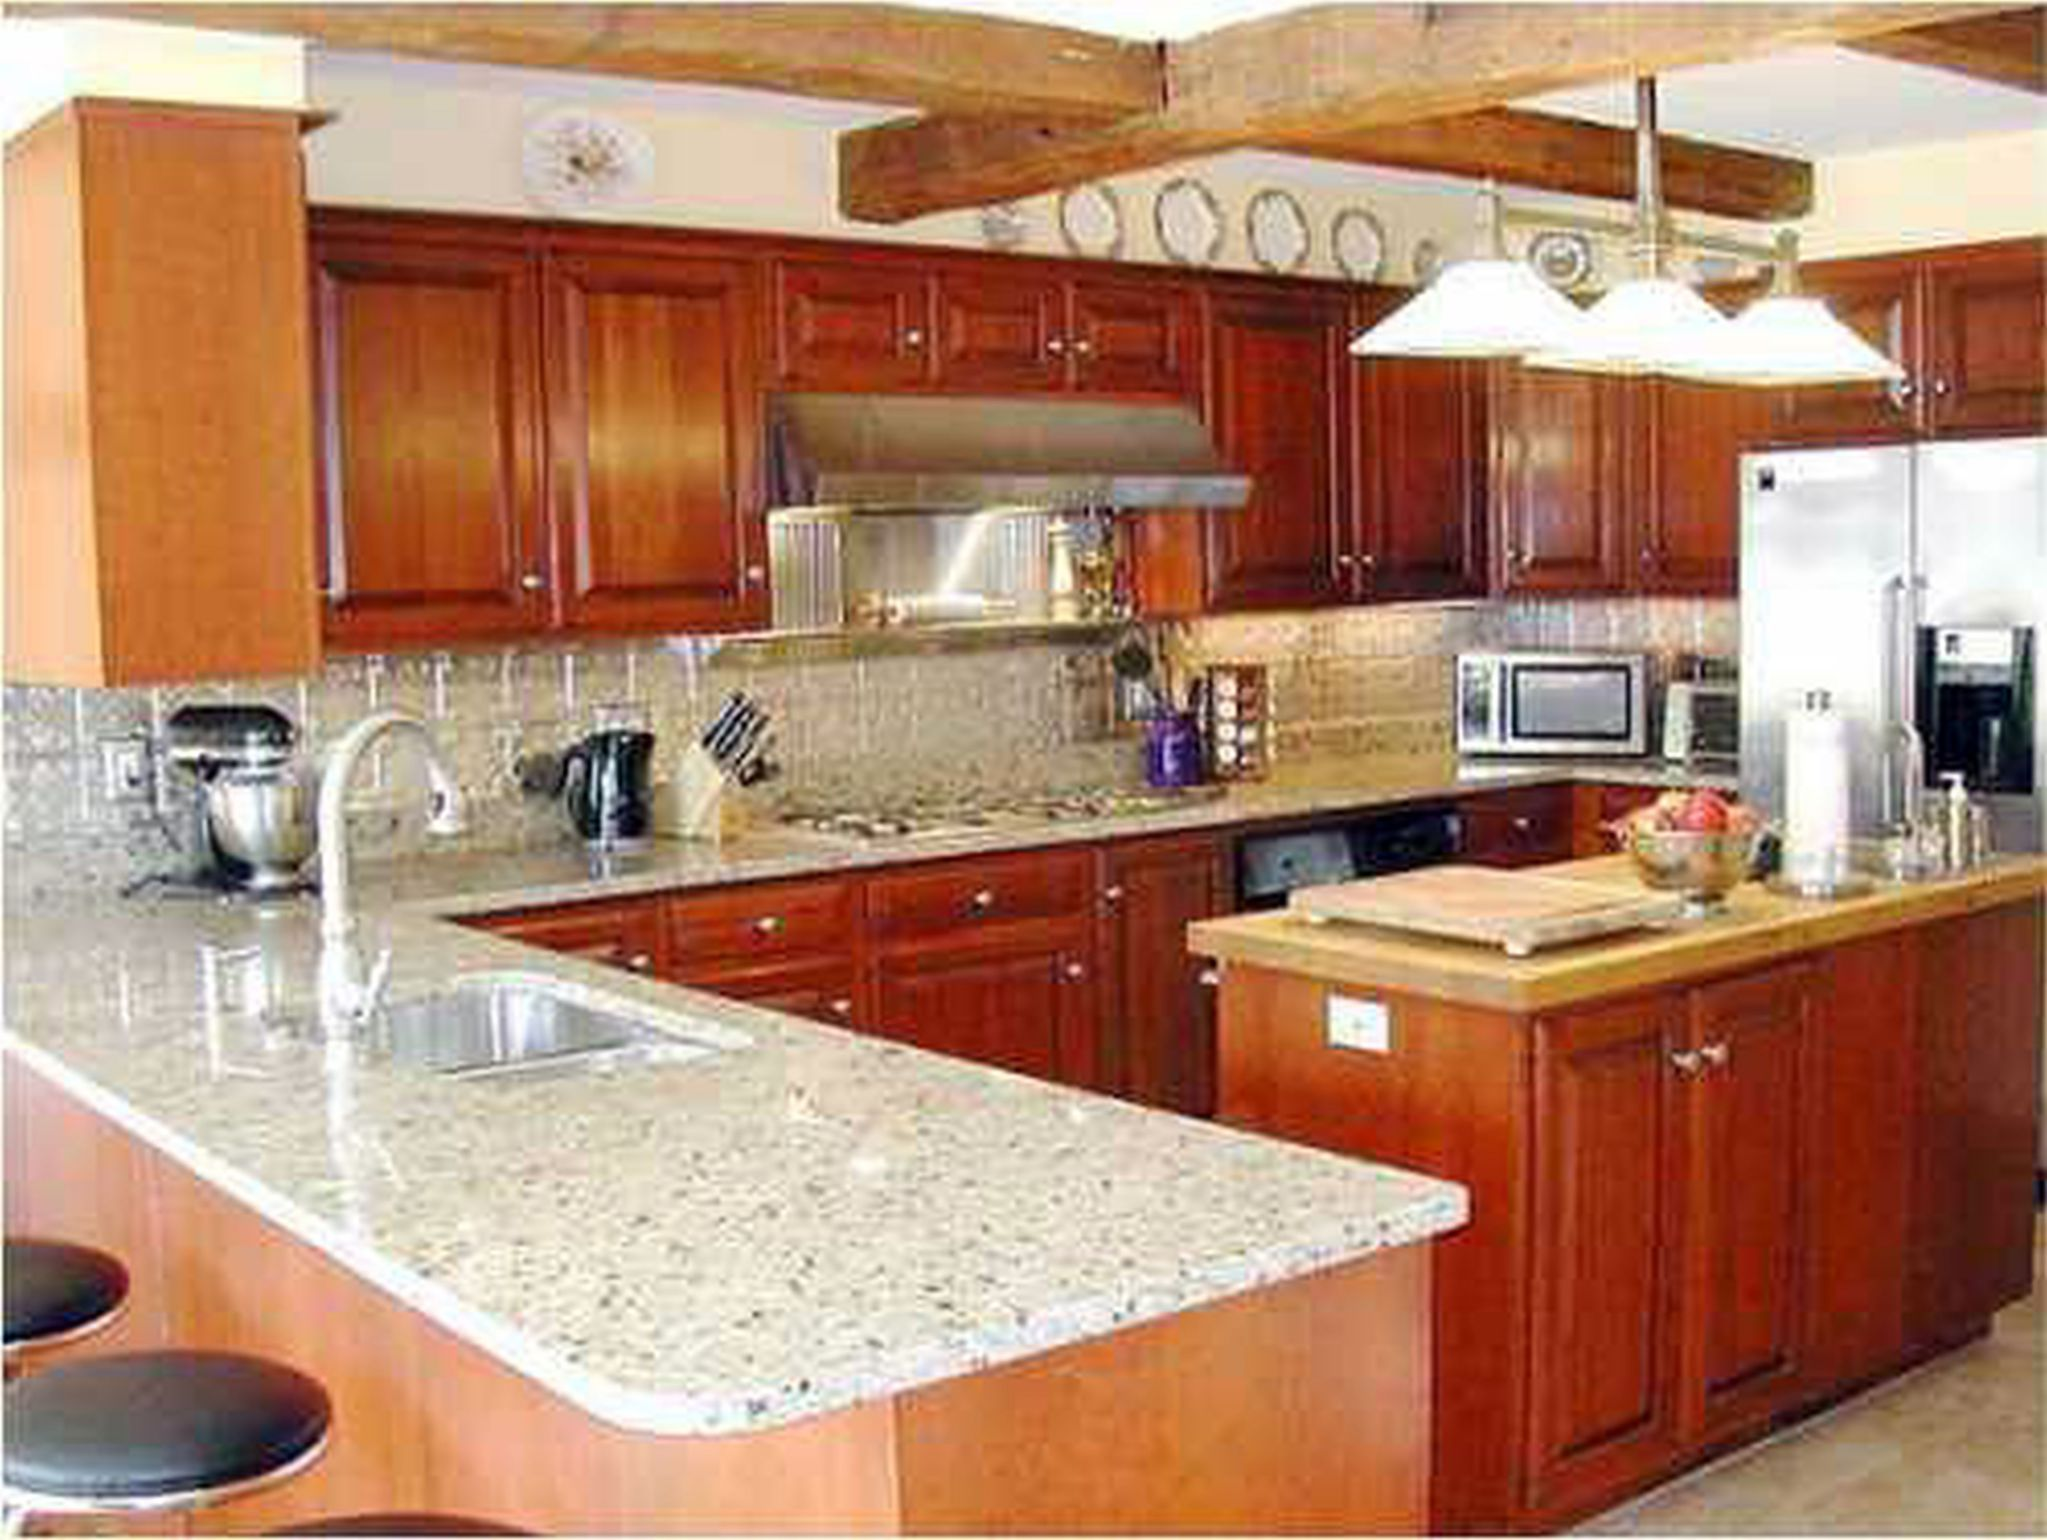 Fancy Interior Kitchen Counter Decor With Brown Wooden Cabinet Also Granite Top